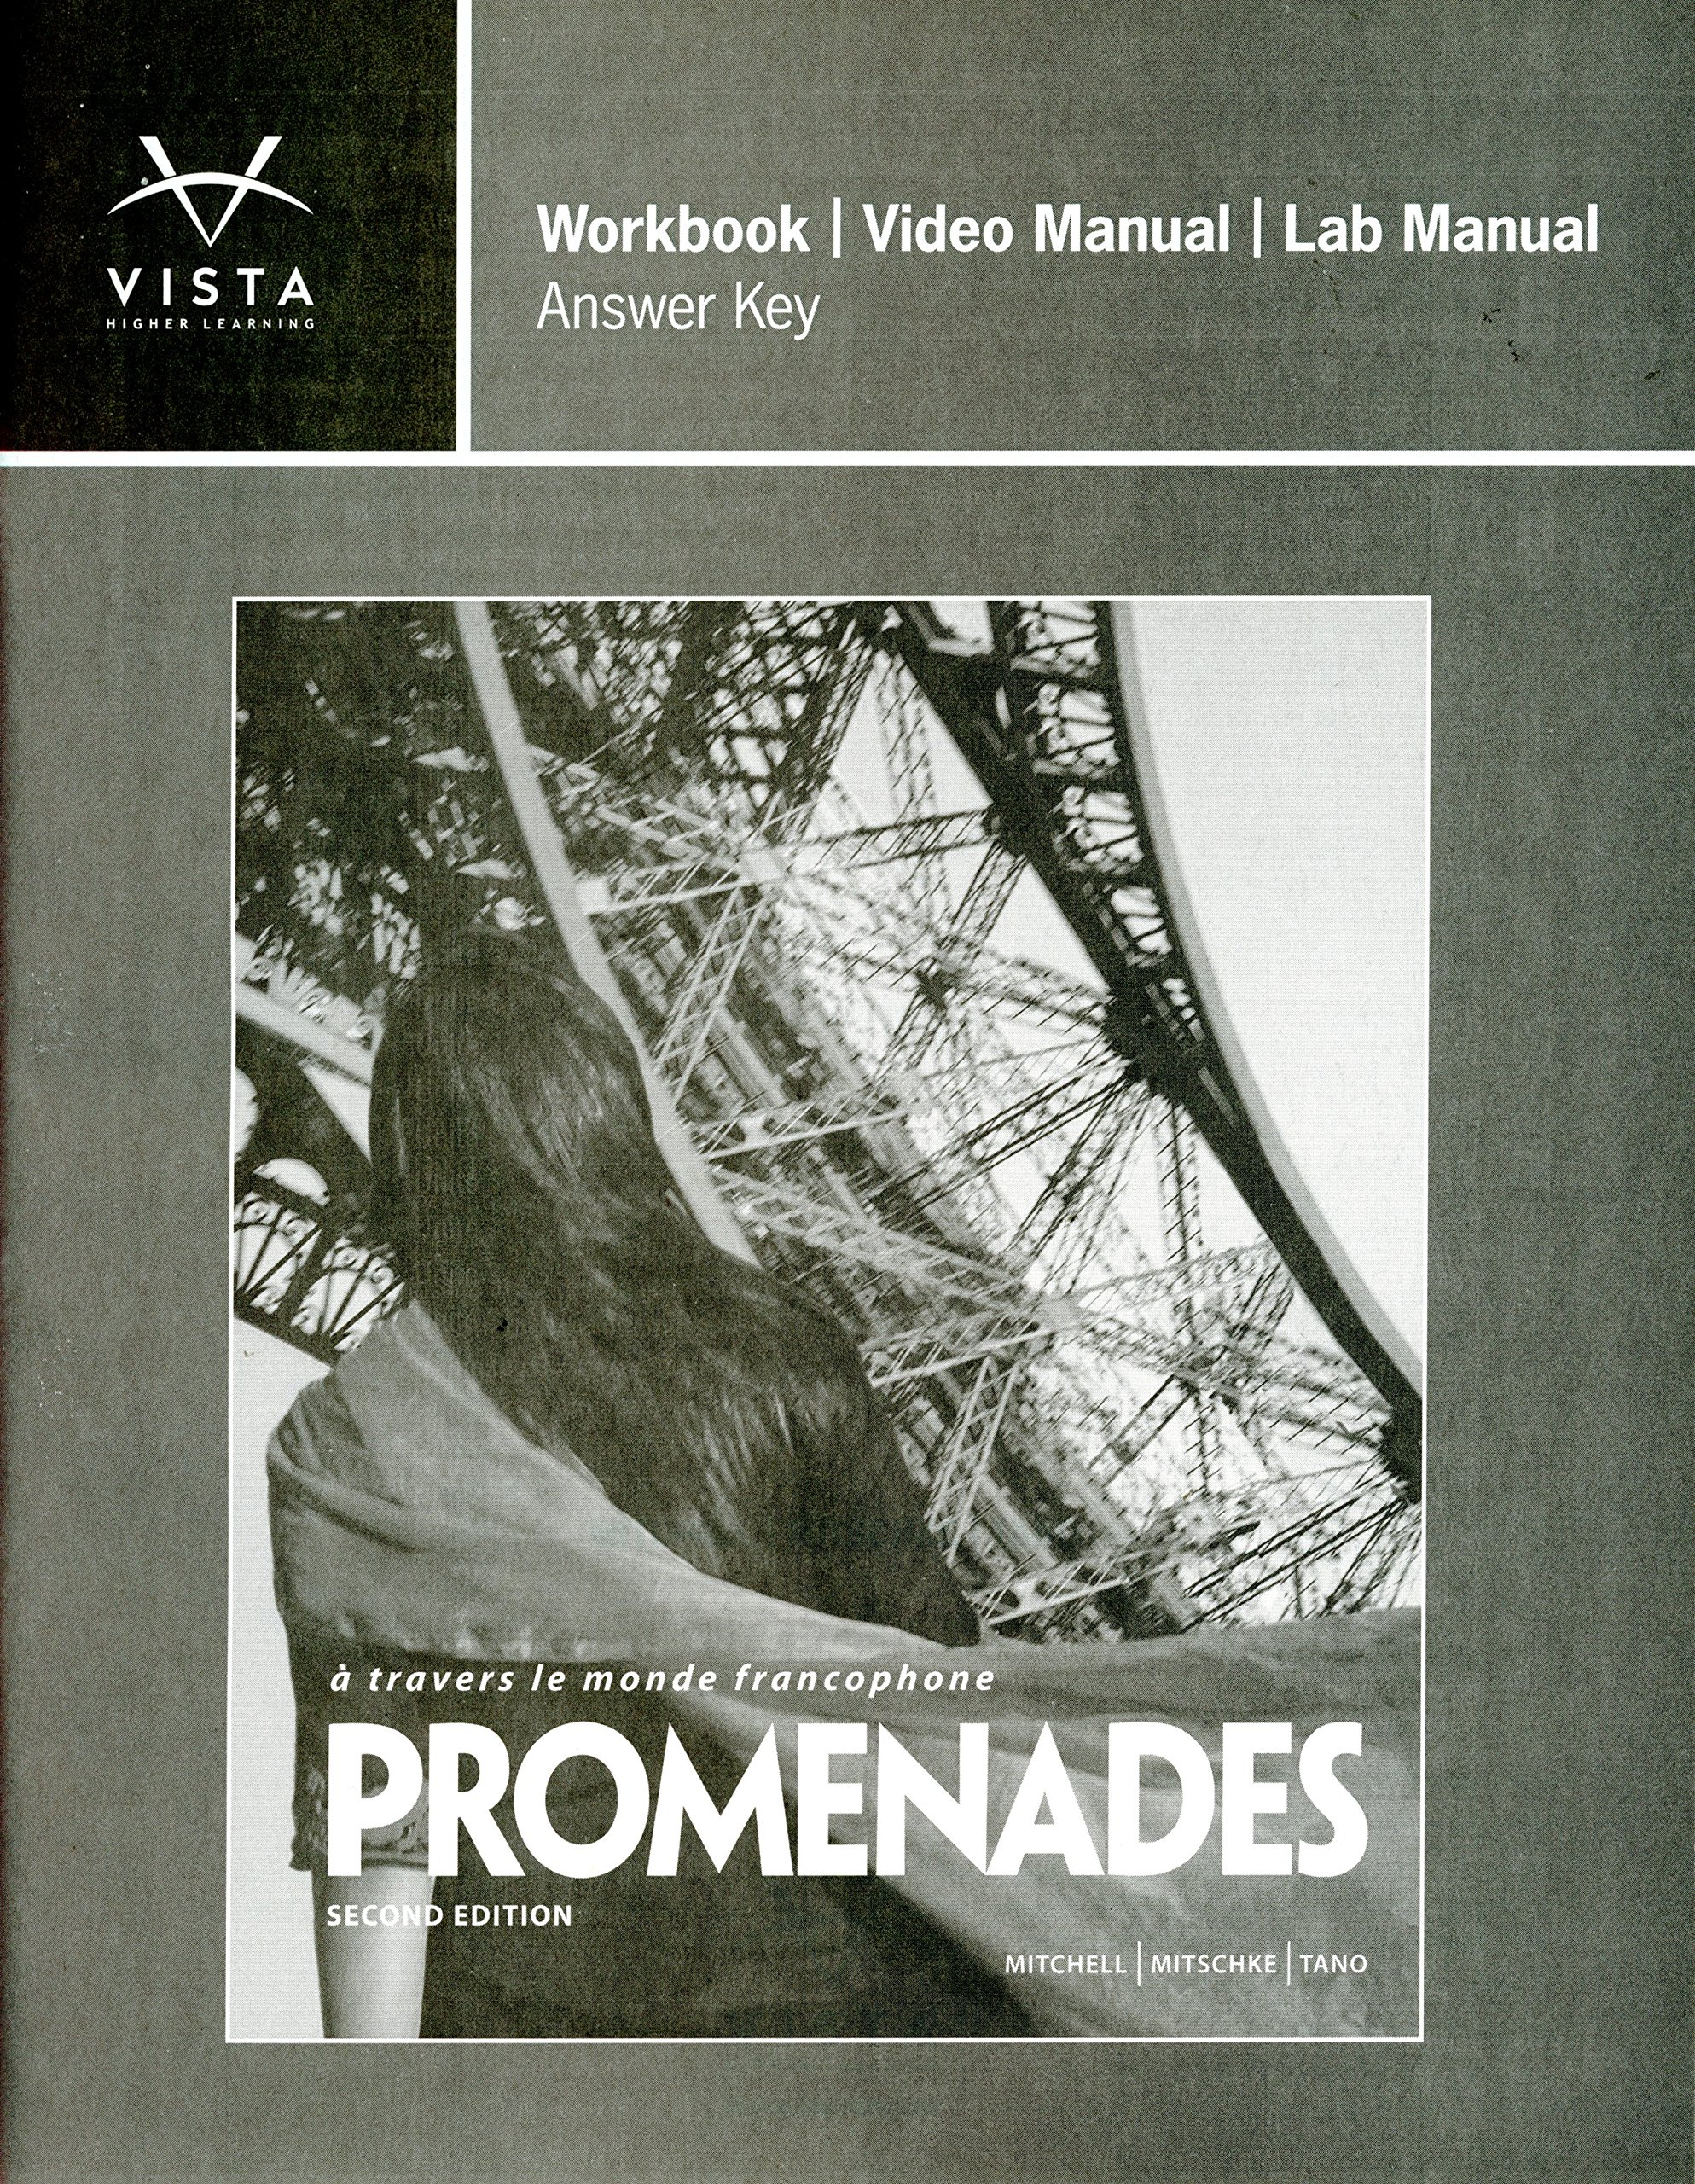 Promenades 2nd answer key for workbookvideo and lab manual vhl promenades 2nd answer key for workbookvideo and lab manual vhl 9781618570192 amazon books fandeluxe Gallery